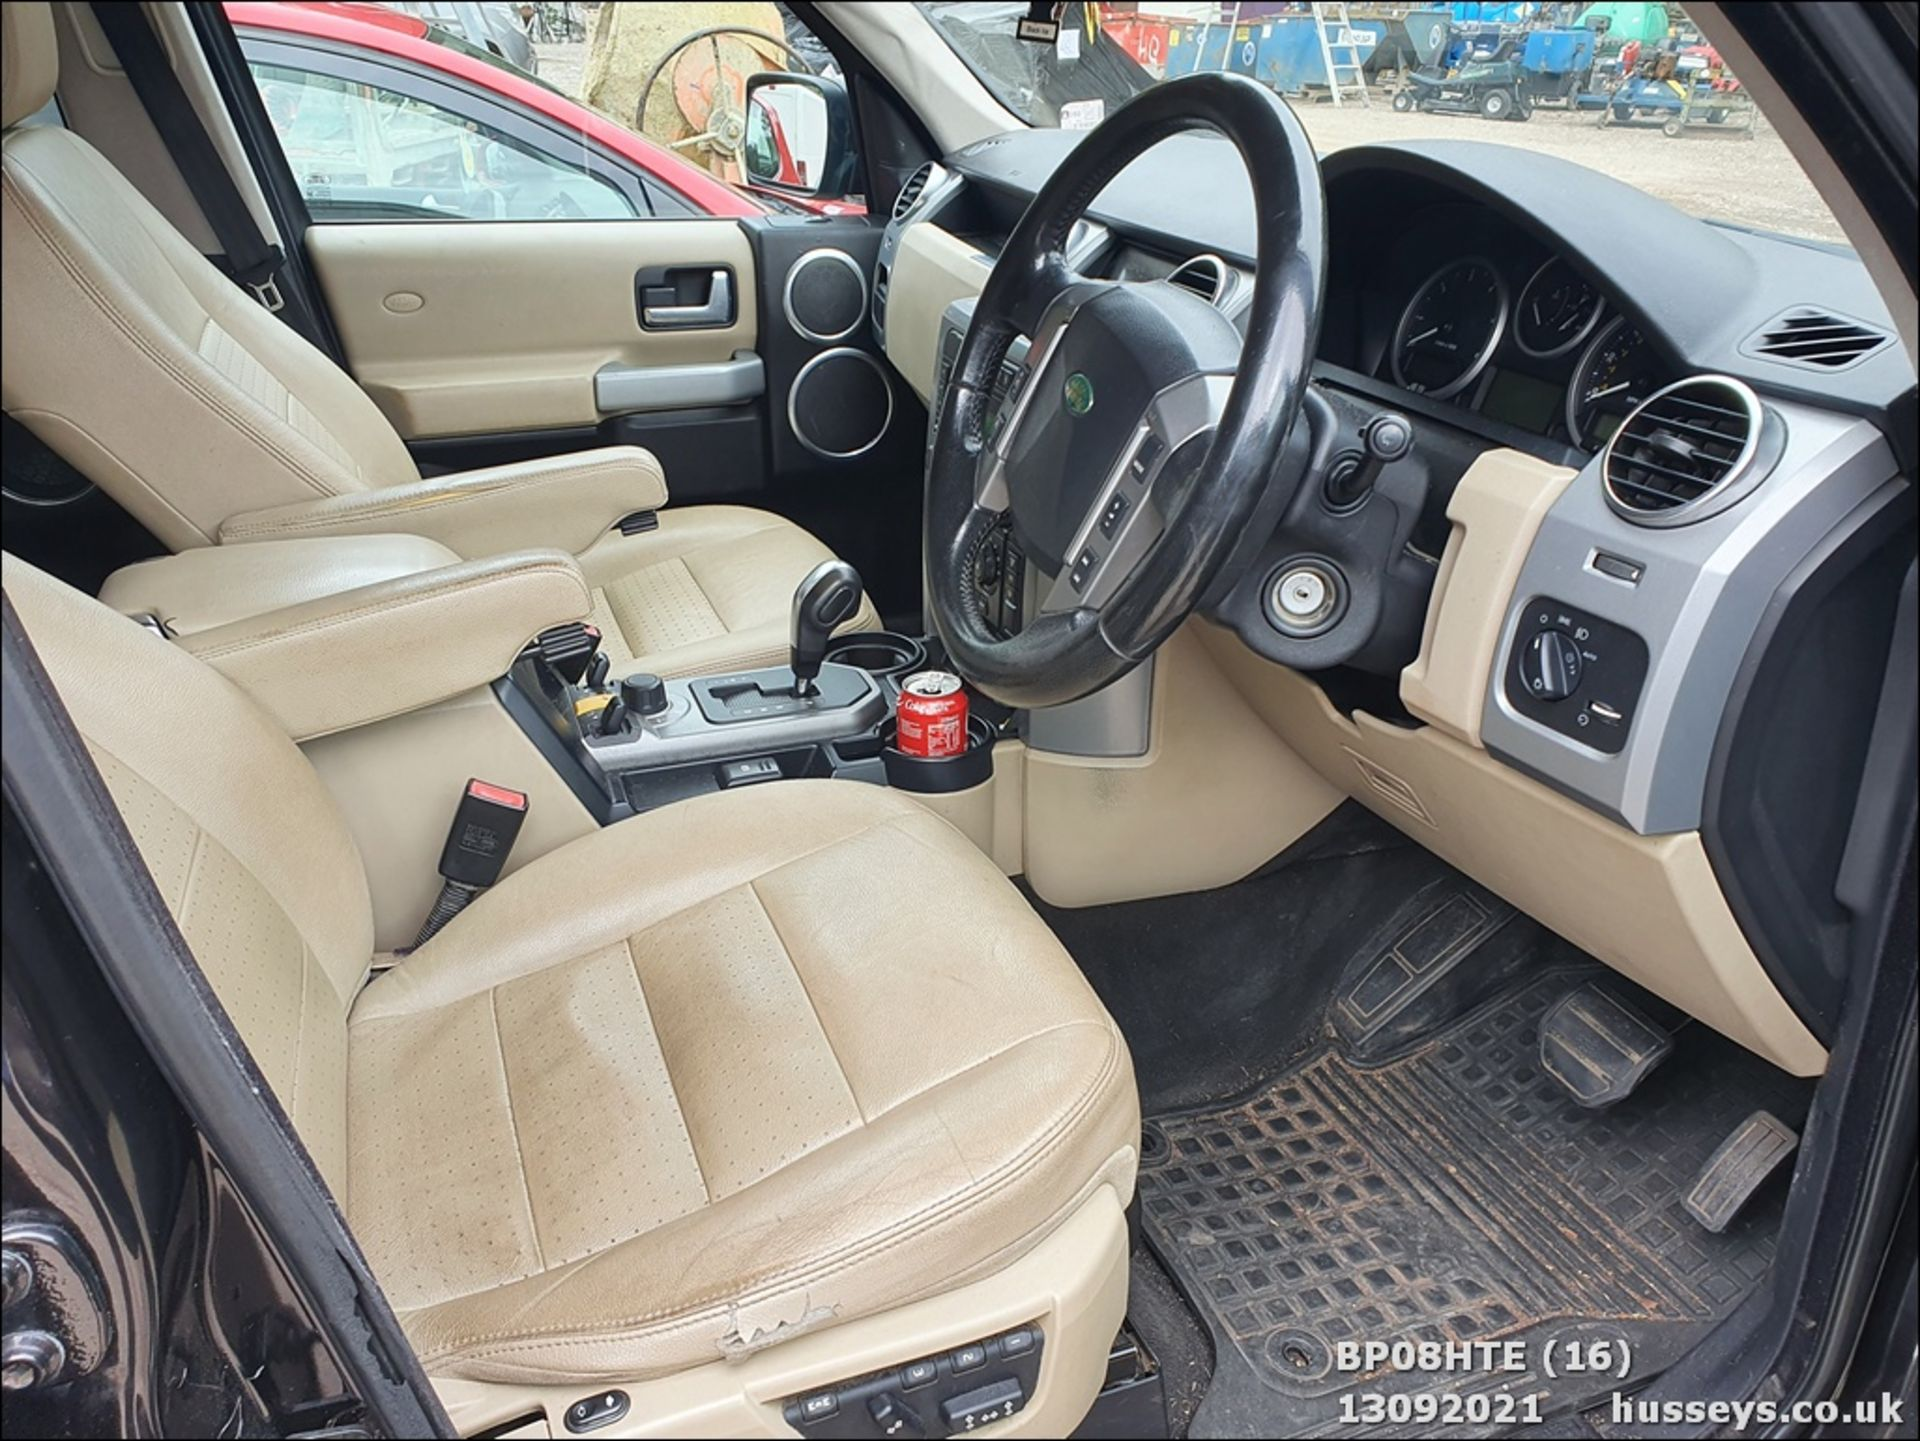 08/08 LAND ROVER DISCOVERY TDV6 SE A - 2720cc 5dr Estate (Brown, 190k) - Image 16 of 18